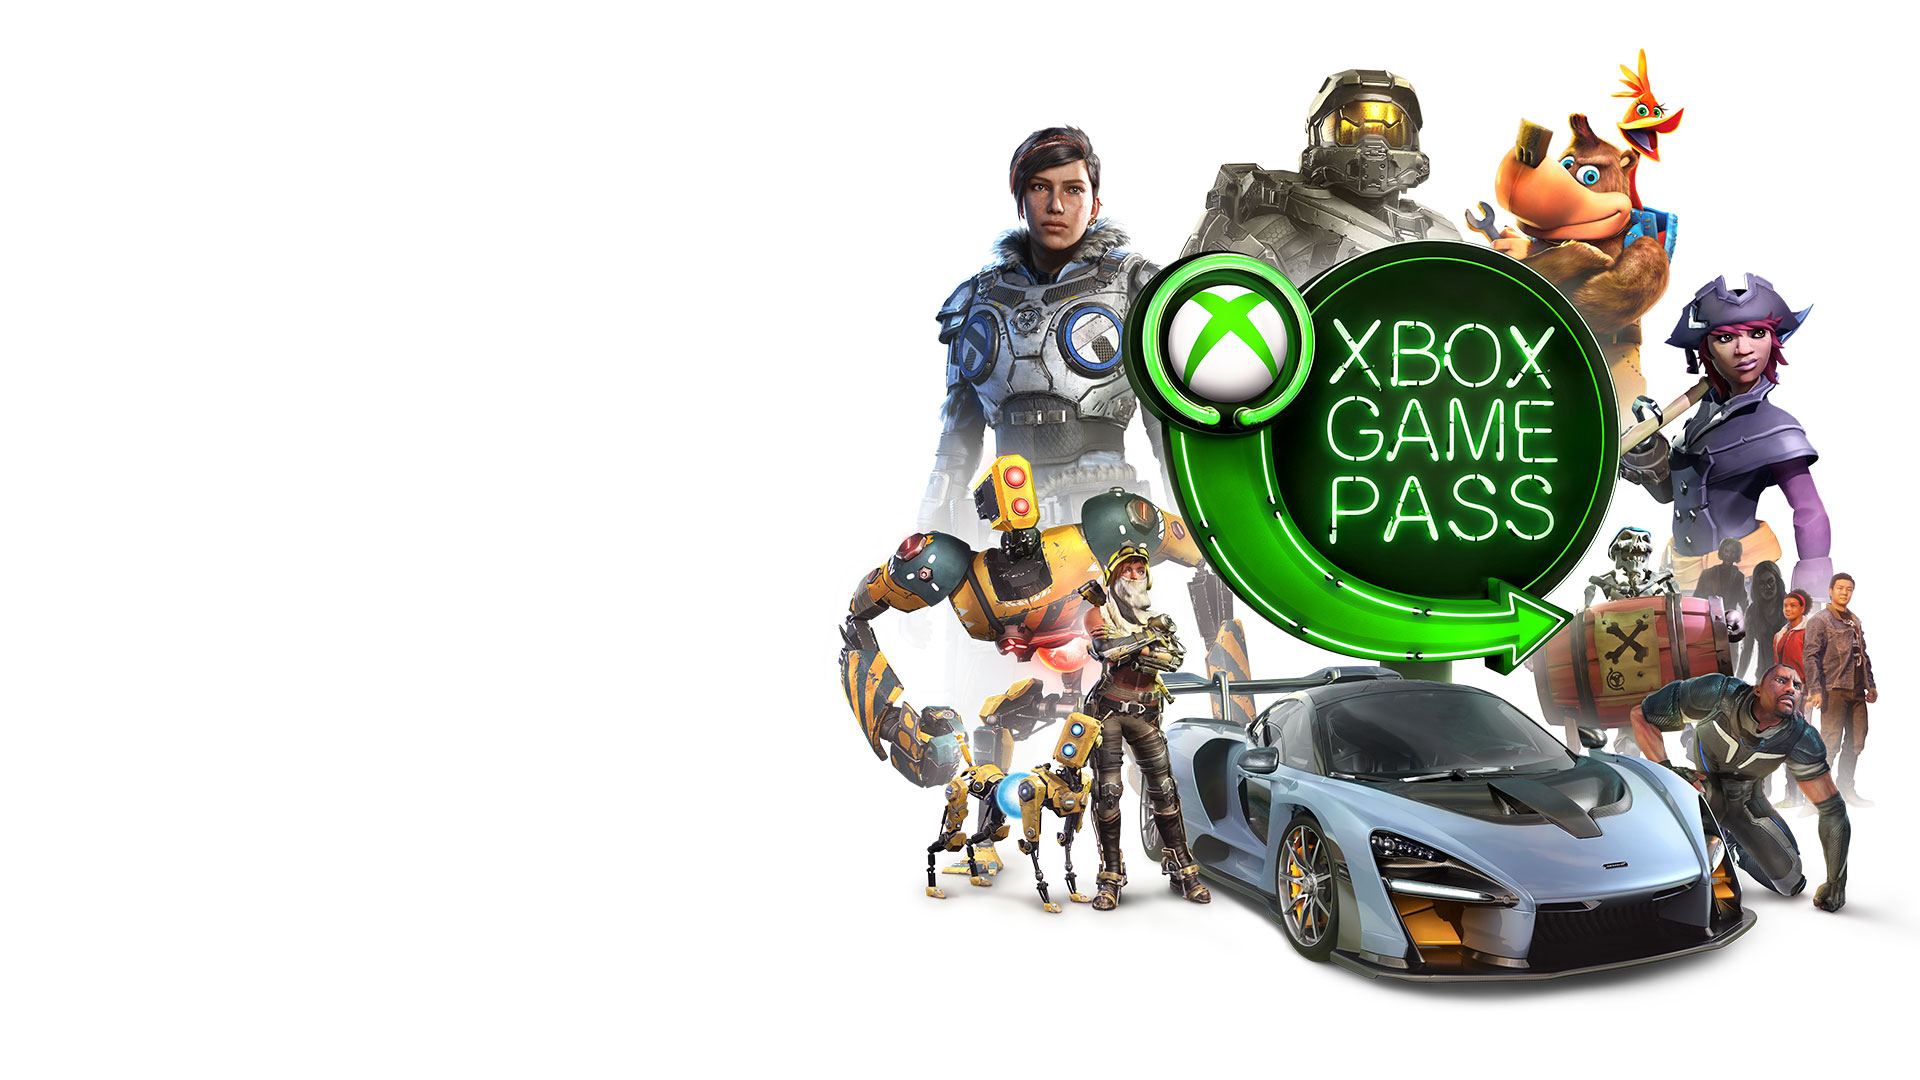 Xbox Game Pass-logo omgivet af Xbox-karakterer som Master Chief, Banjo og Kazooie, Sea of Thieves-pirater og Recore-karakterer